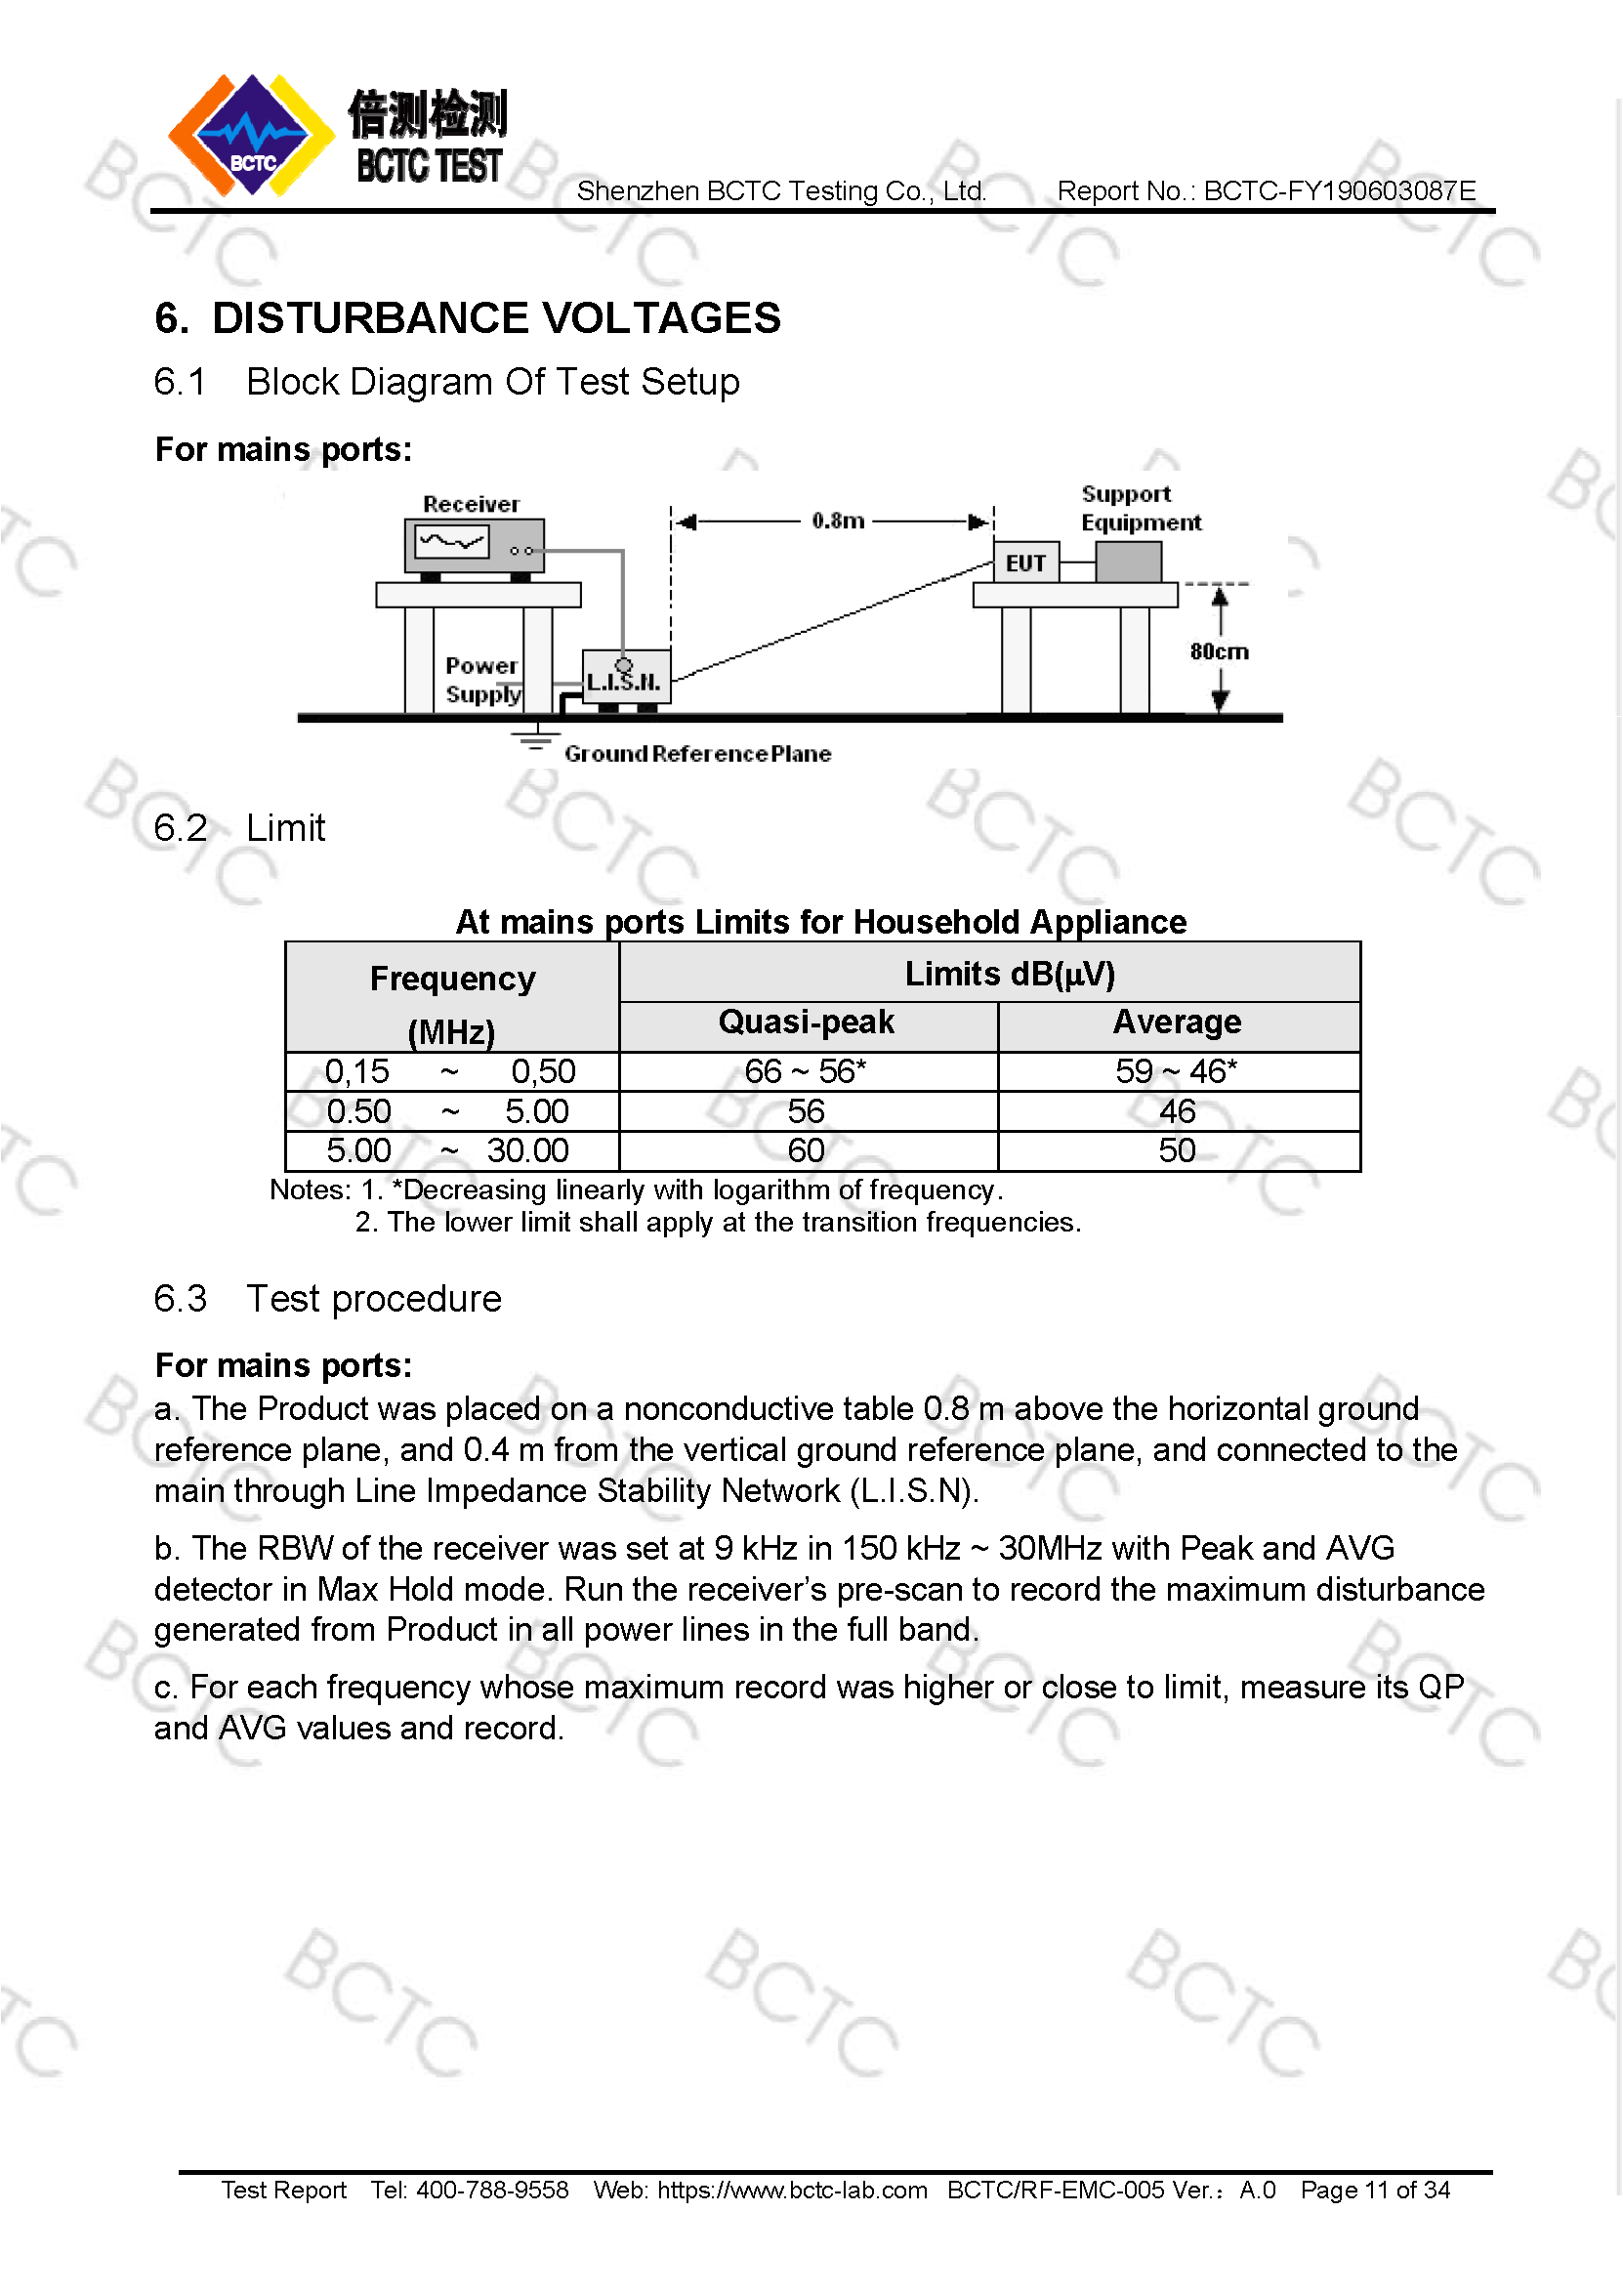 Tri-Oxy COMPLETE EMC Test Report Page 11